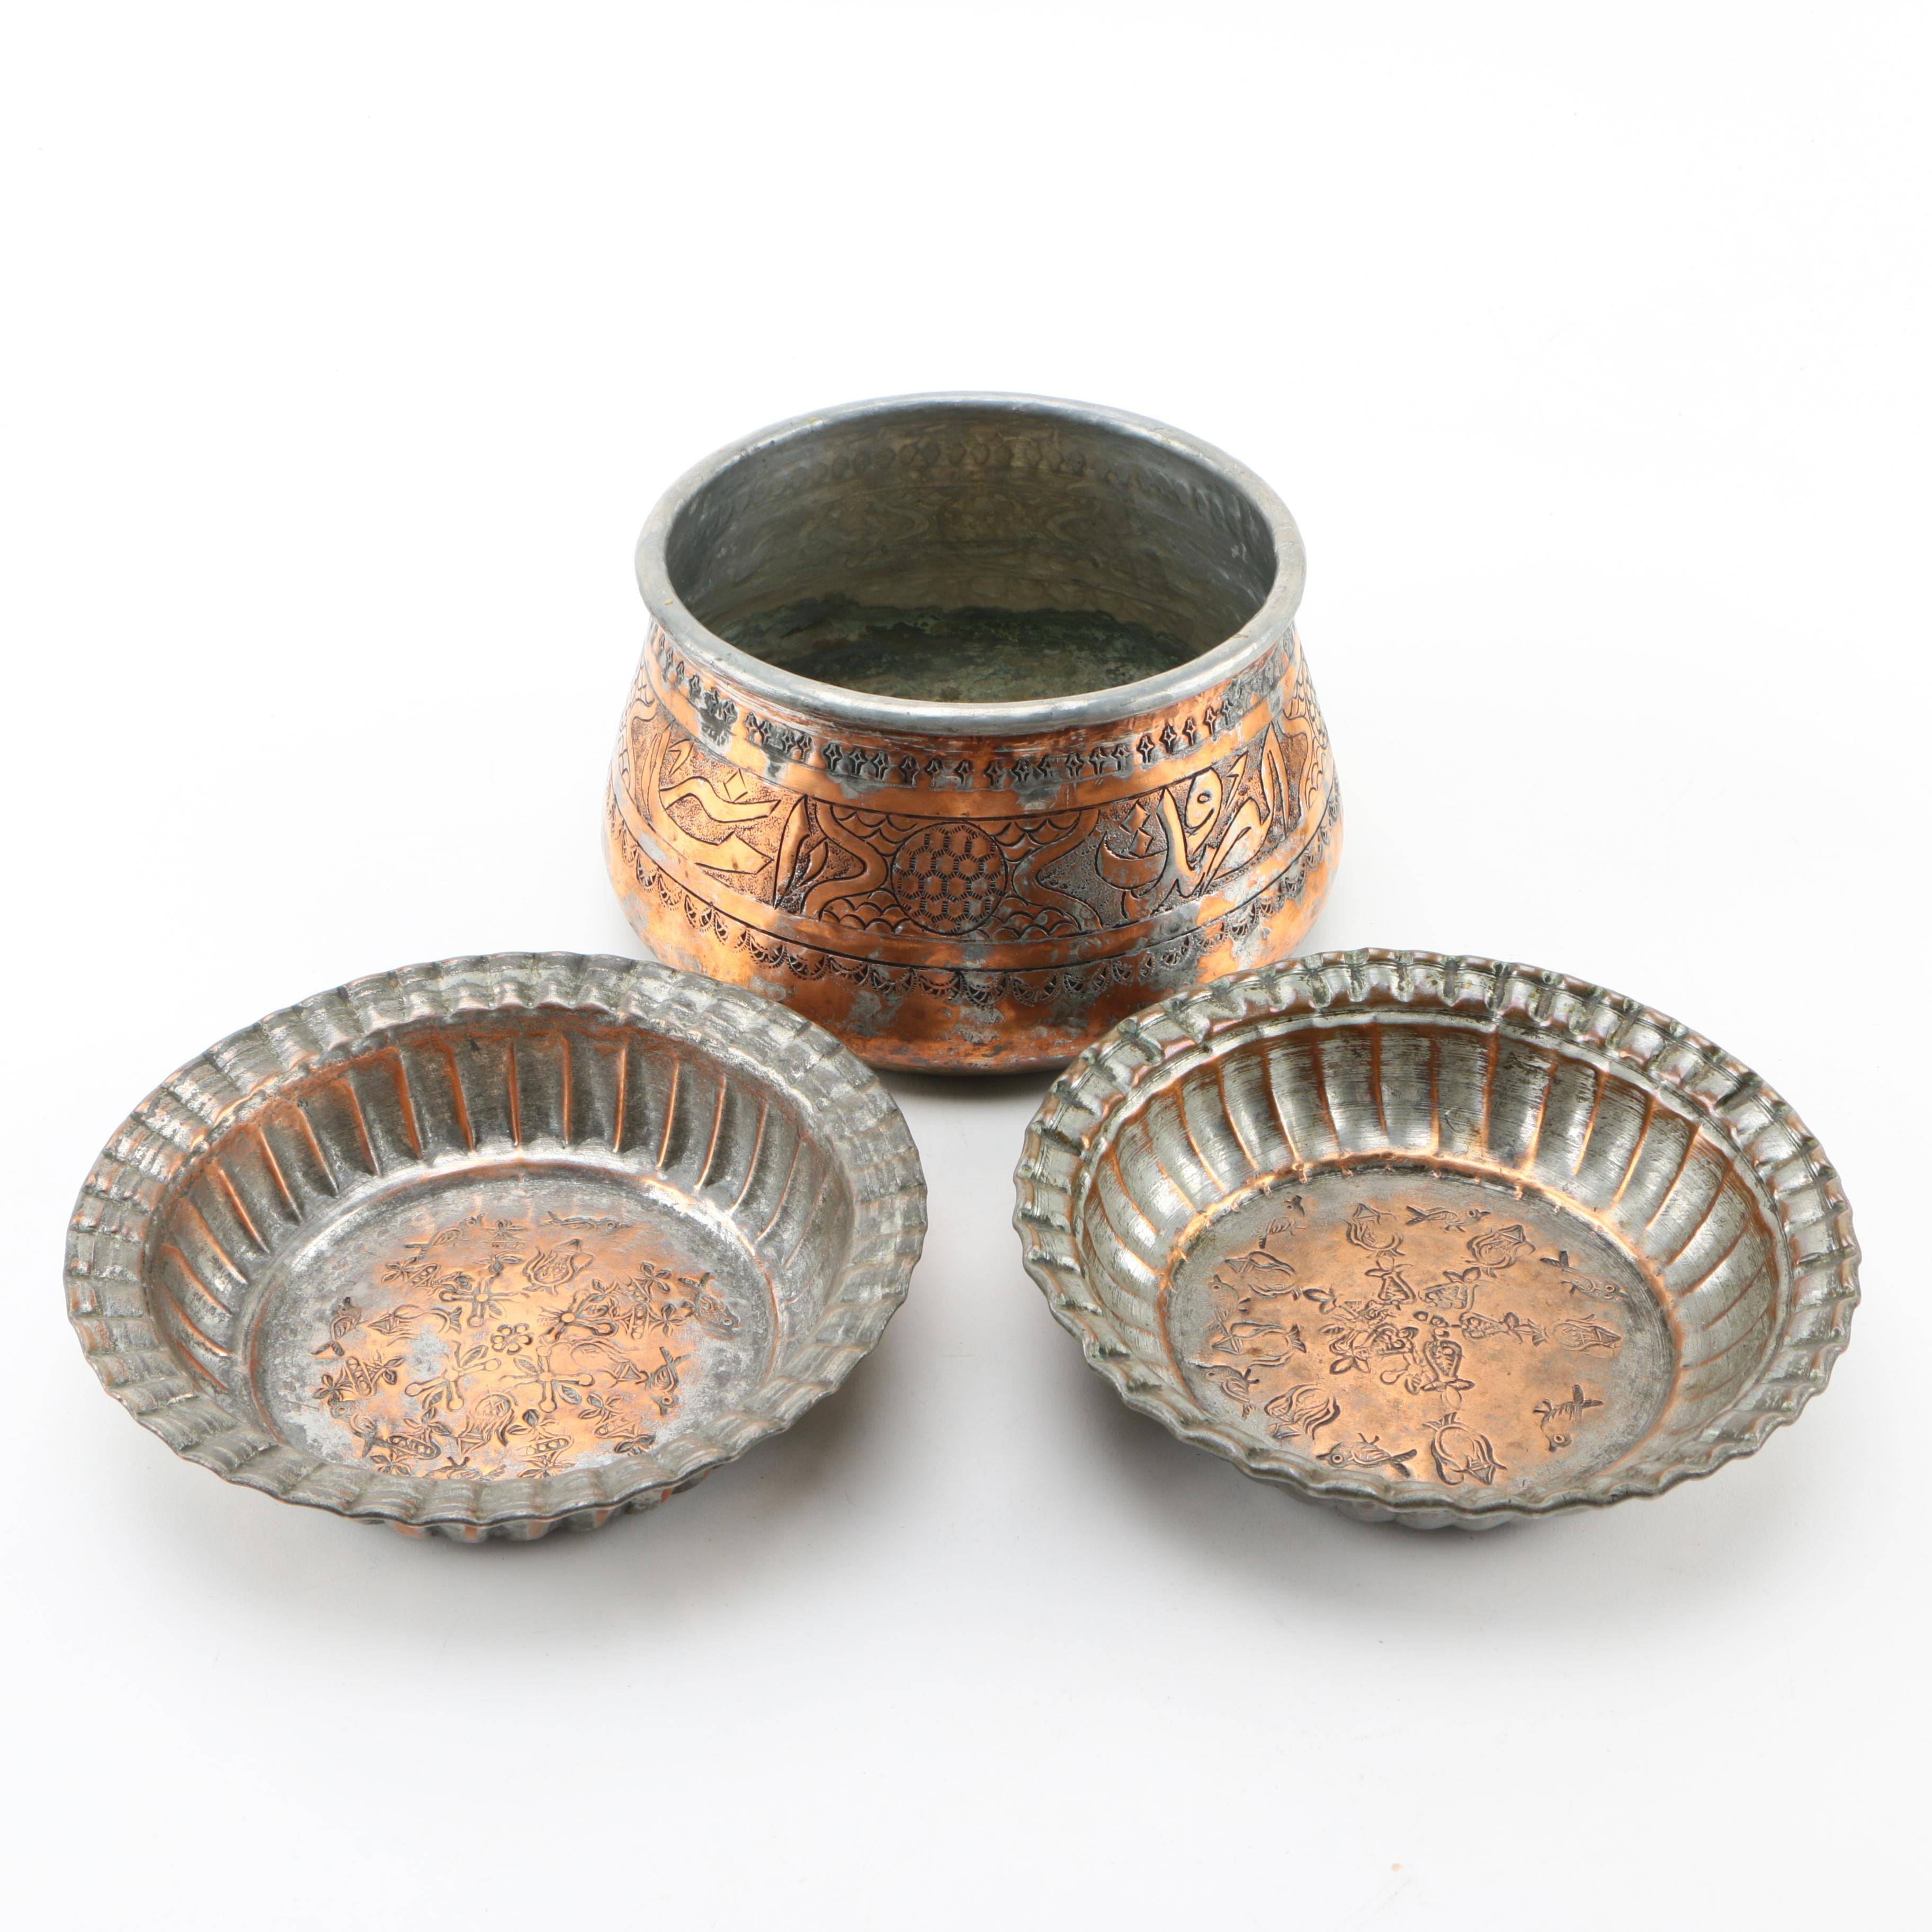 Vintage Indo-Persian Style Copper Plated Dishes